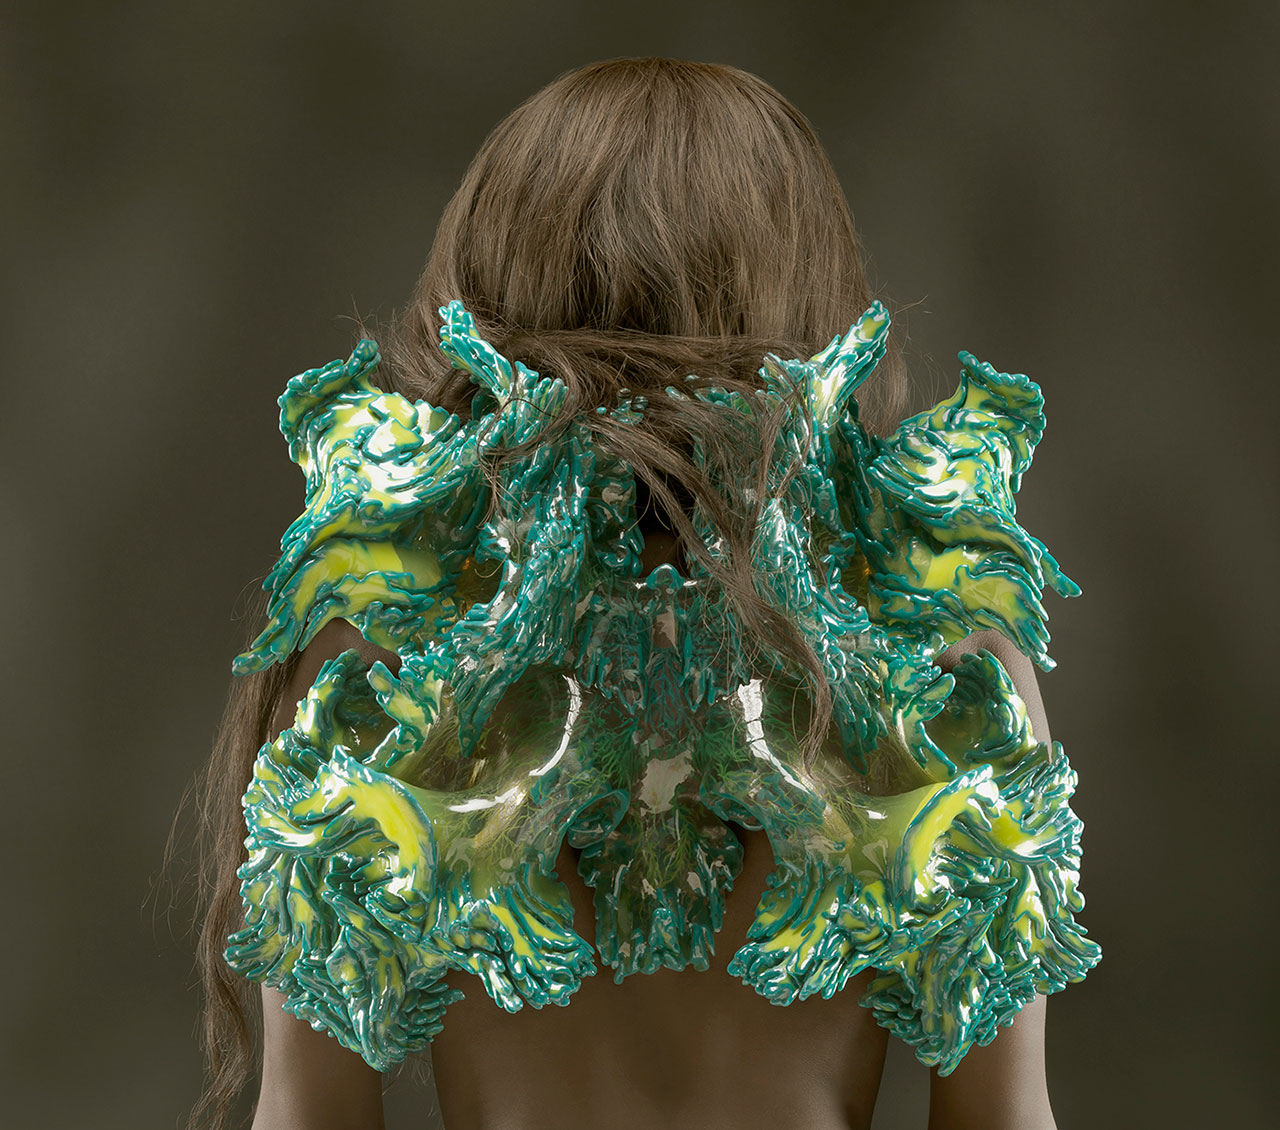 Otaared, from Wanderers collection, 2014. Designed by Neri Oxman and Mediated Matter, MIT Media Lab in collaboration with Stratasys, Ltd. Produced by Stratasys, Ltd. Multi-material 3D print. Courtesy of Stratasys, Ltd. Photo by Yoram Reshef. © Licensed to Neri Oxman only.